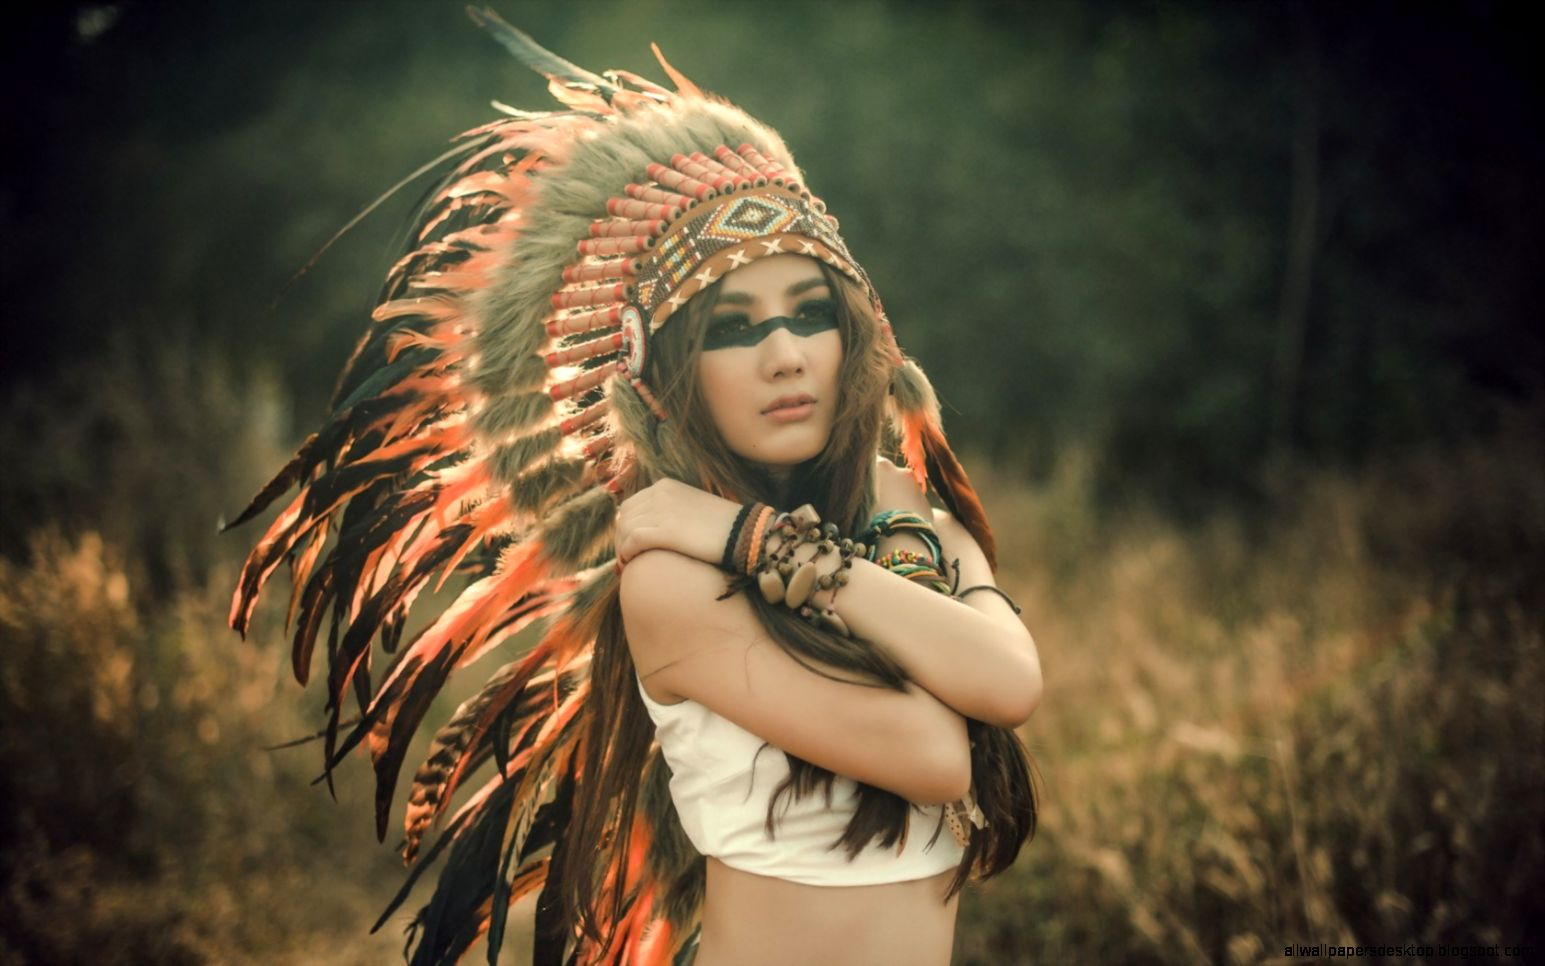 Brunette Girl Indian Headdress 6962379